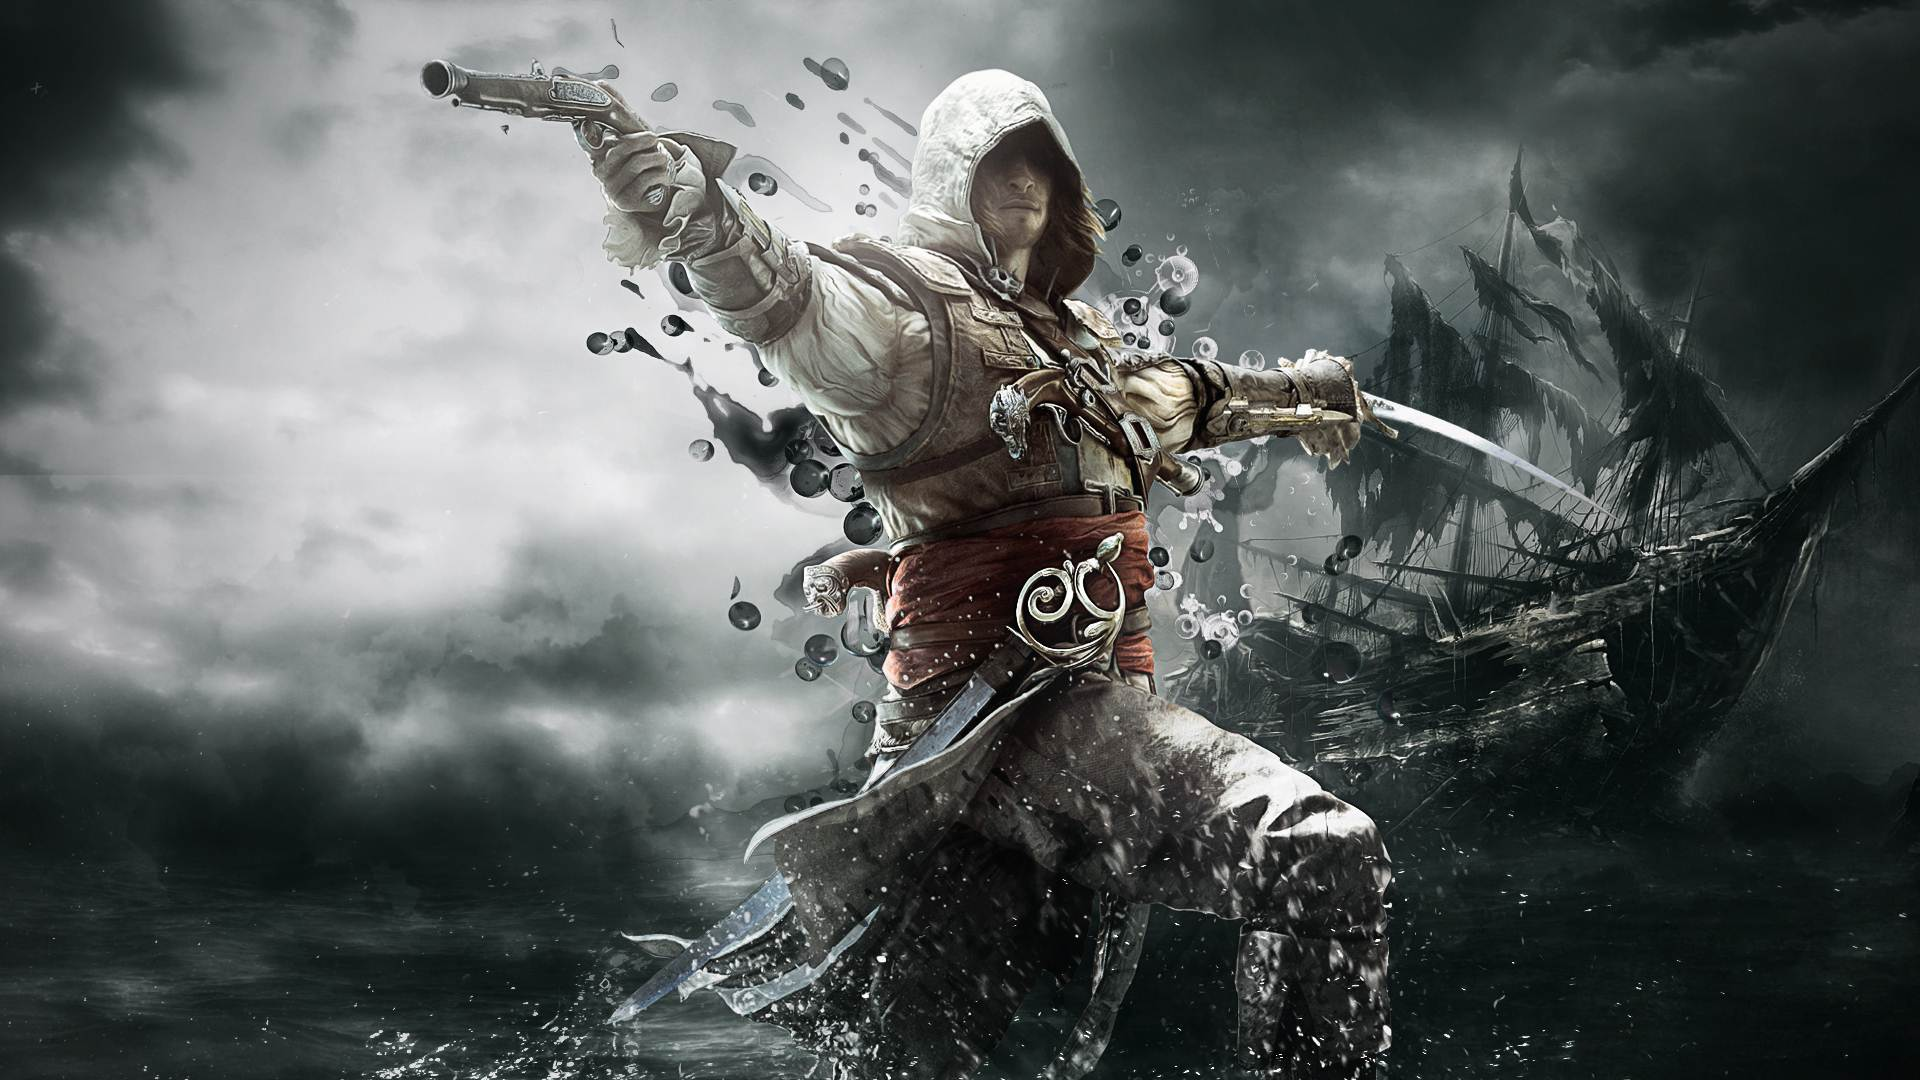 Assassin's Creed 5: Ubisoft's Precarious Step Ahead ...